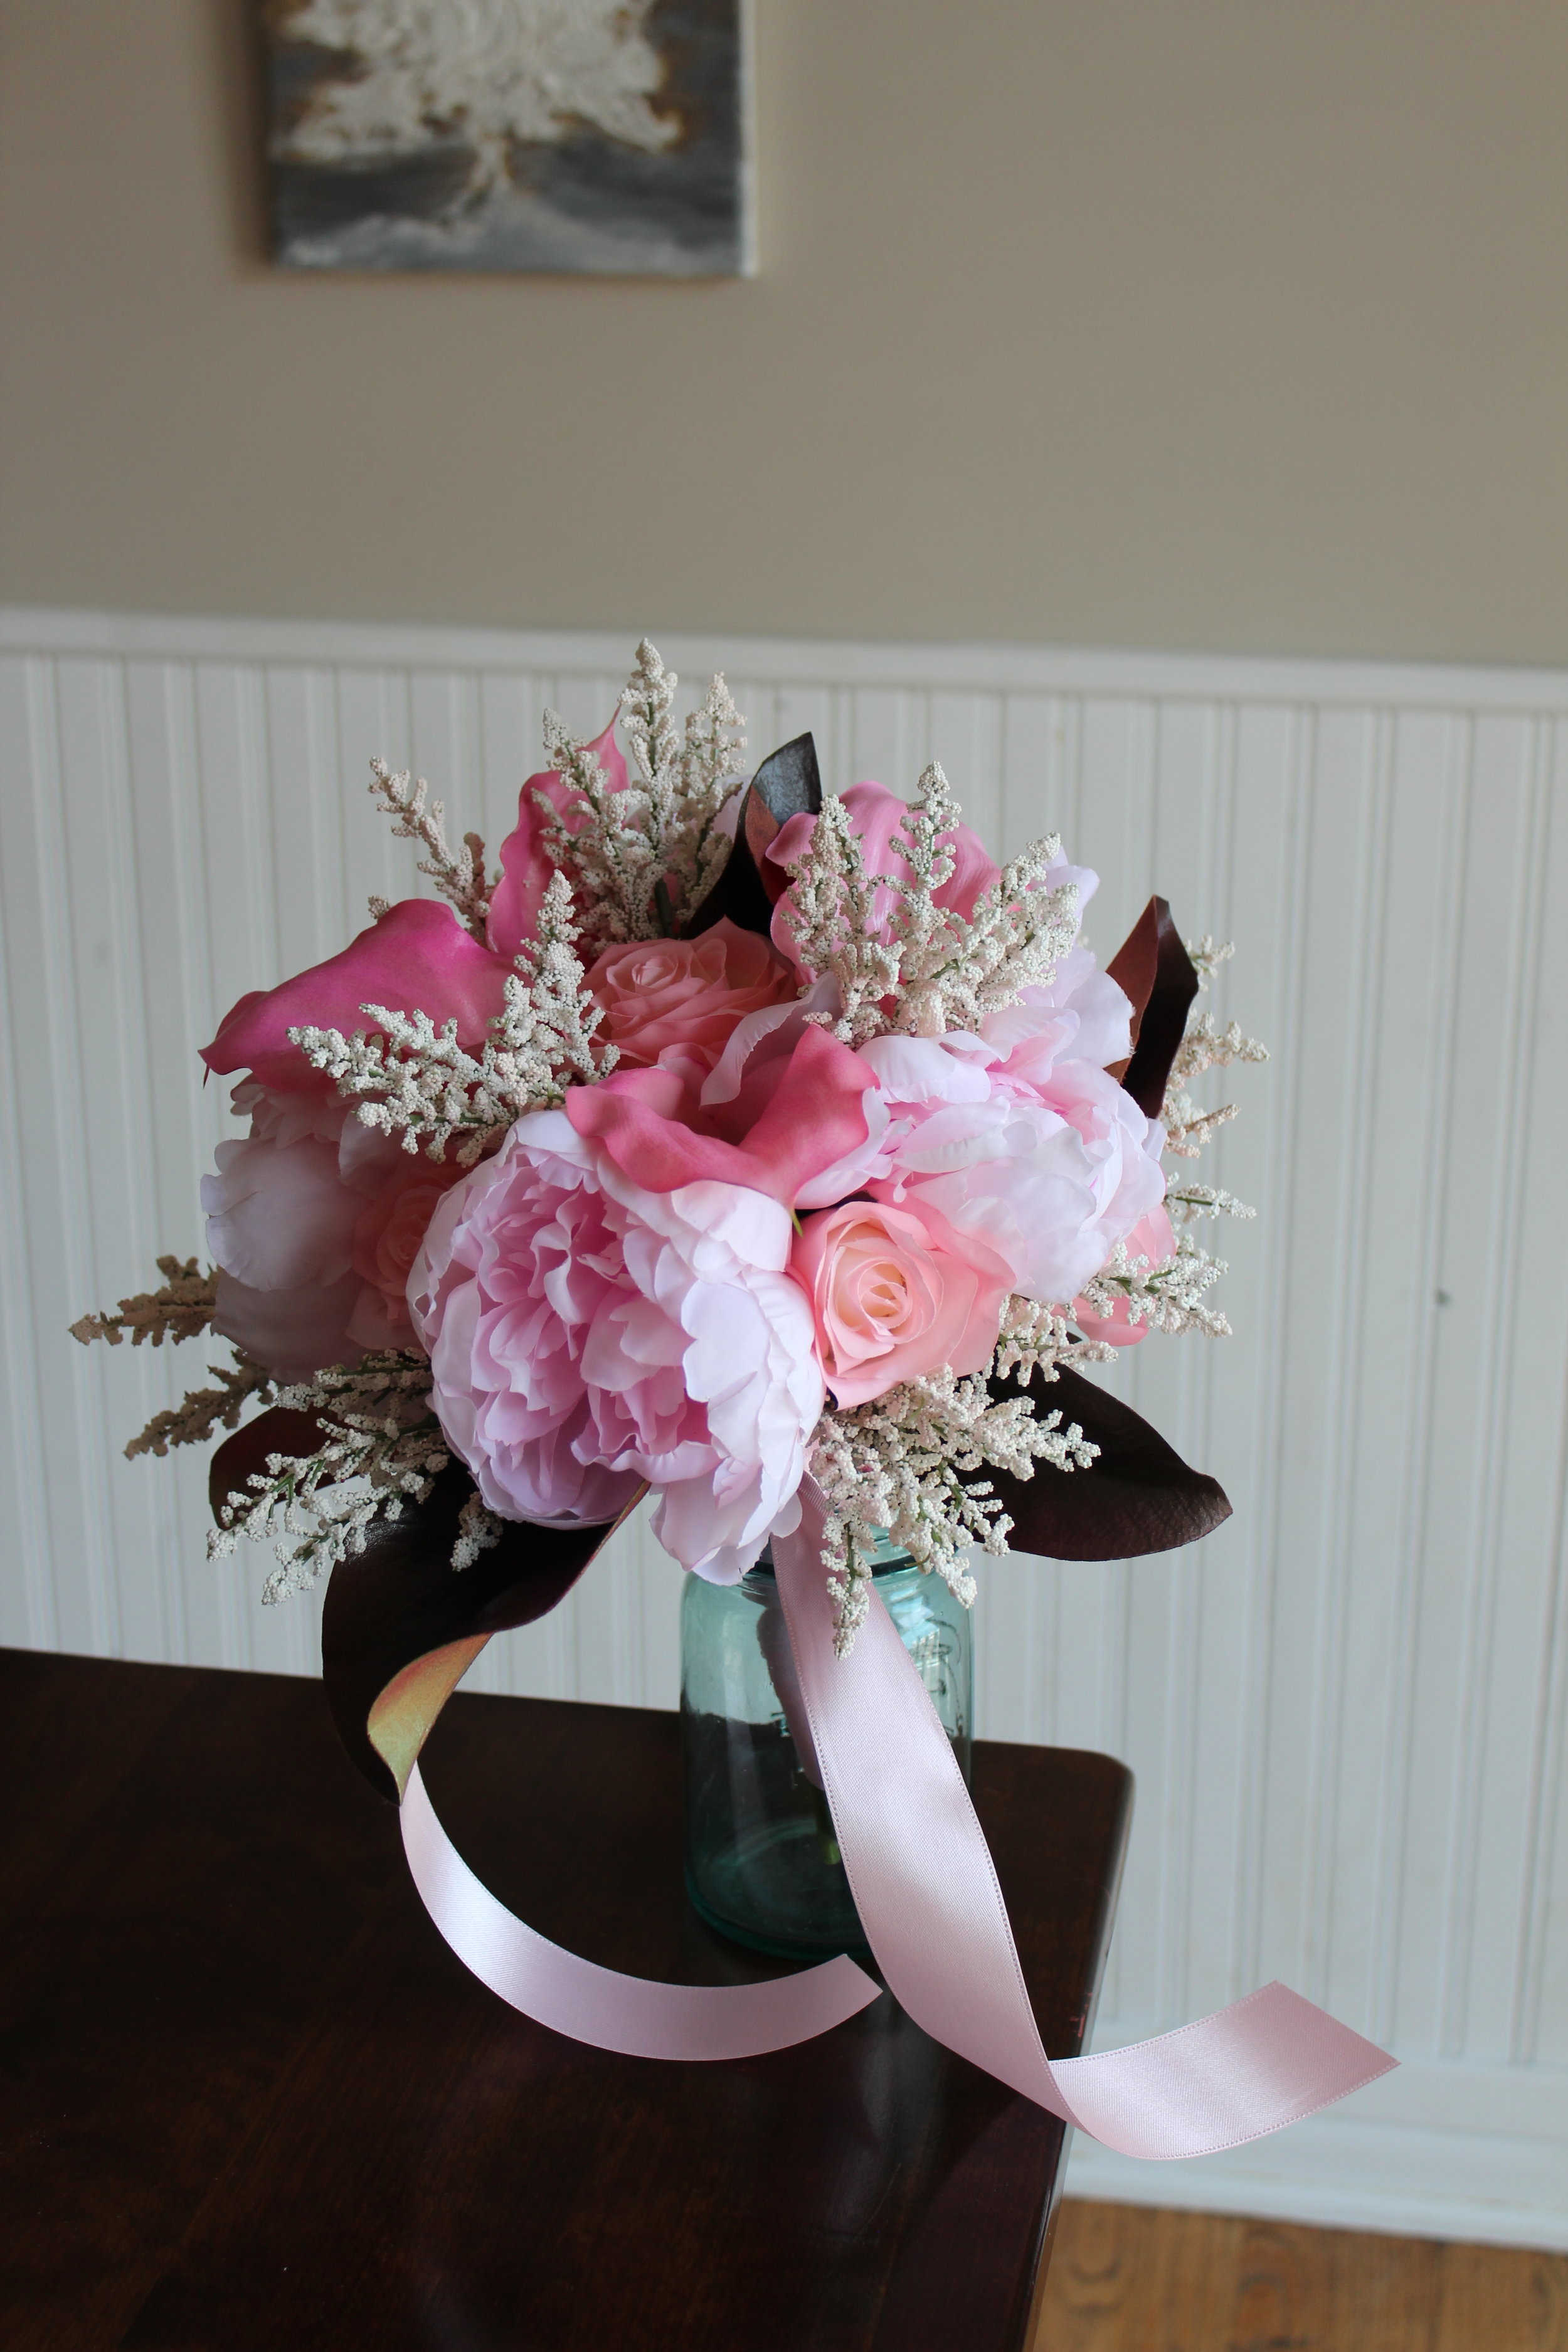 silk-wedding-flowers-pink-bridal-bouquet-recreation-rose-peonies-lillies.jpg